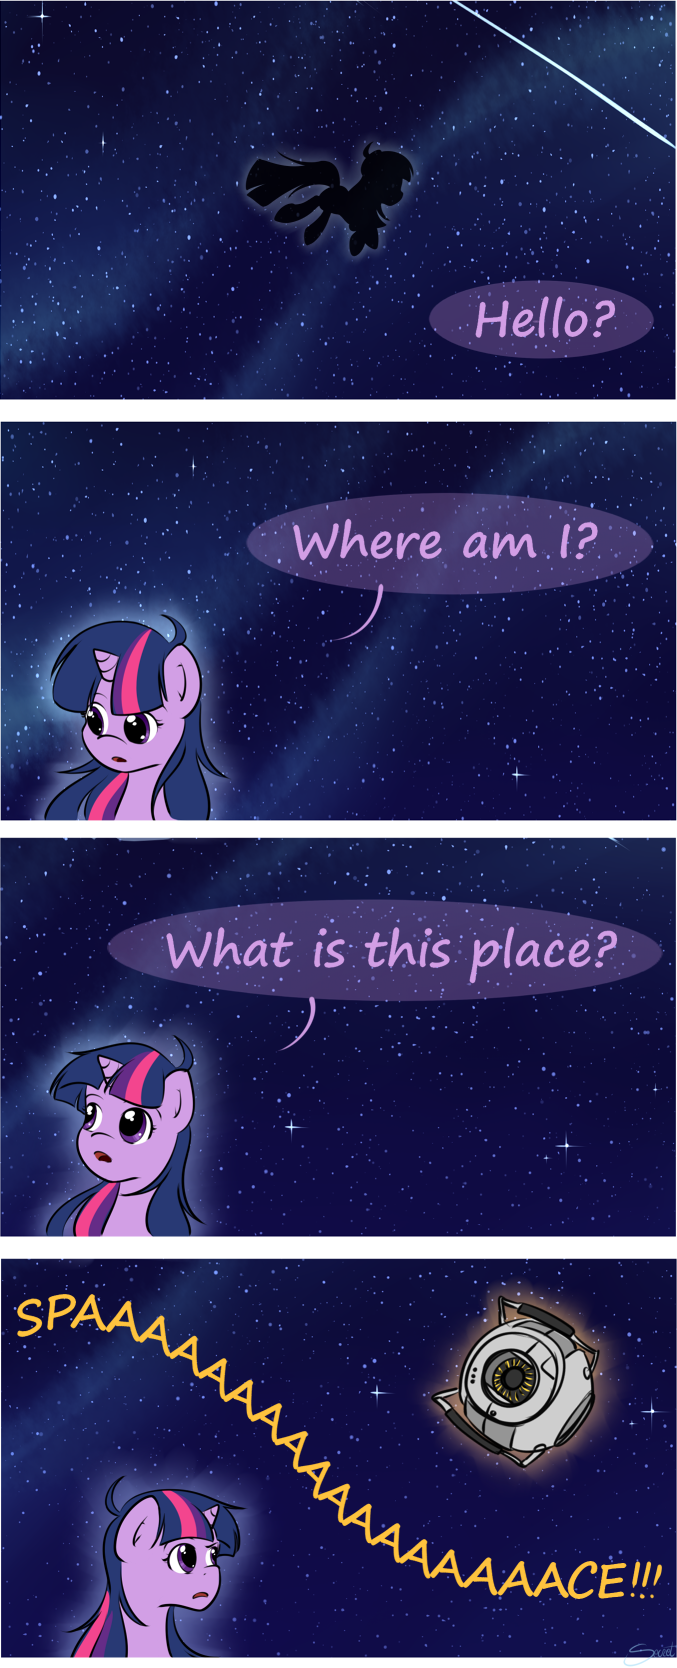 [episode spoiler] What is this place? by secret-pony